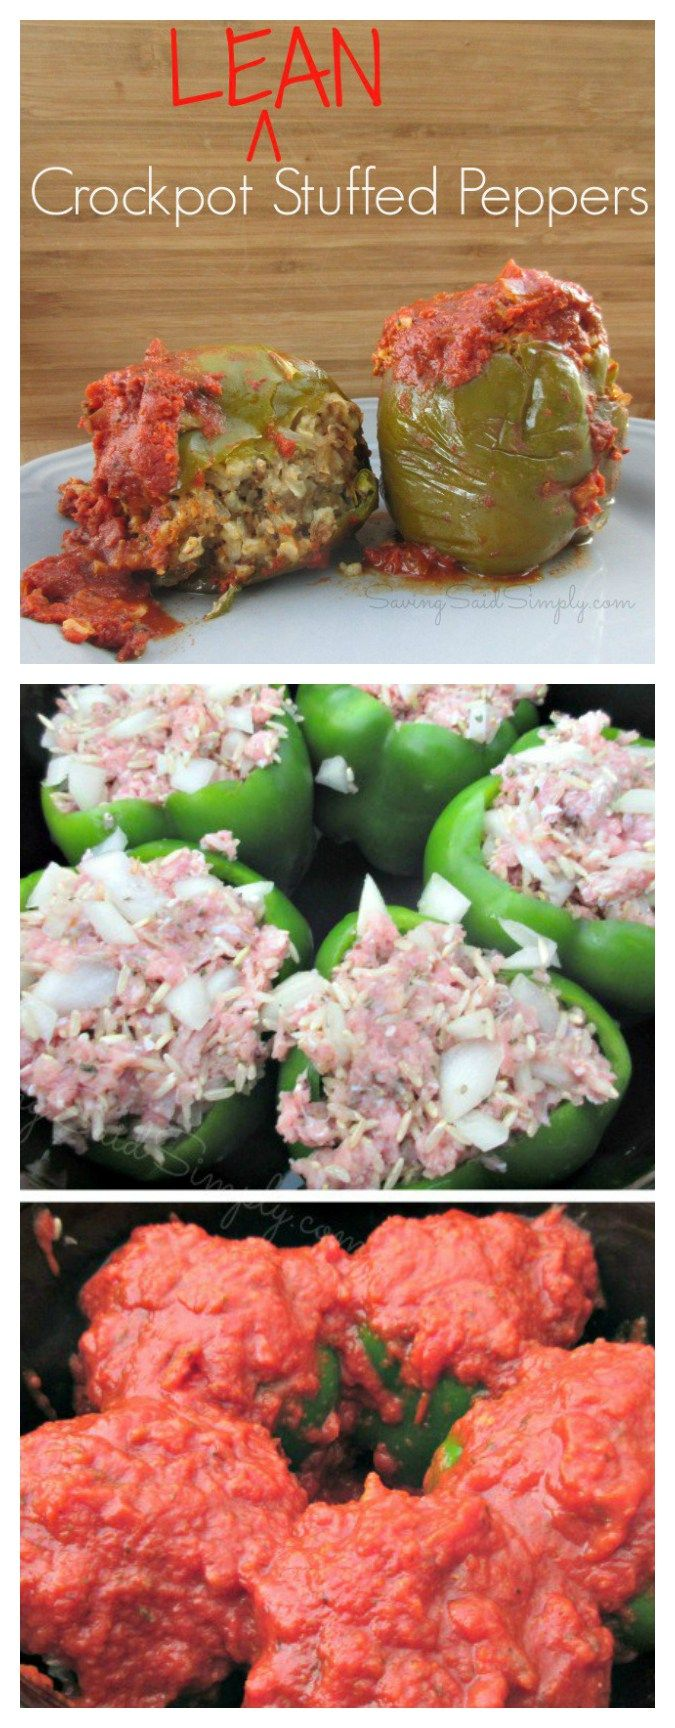 Crock Pot Lean Stuffed Peppers Recipe | healthy stuffed peppers recipe, made in the slow cooker